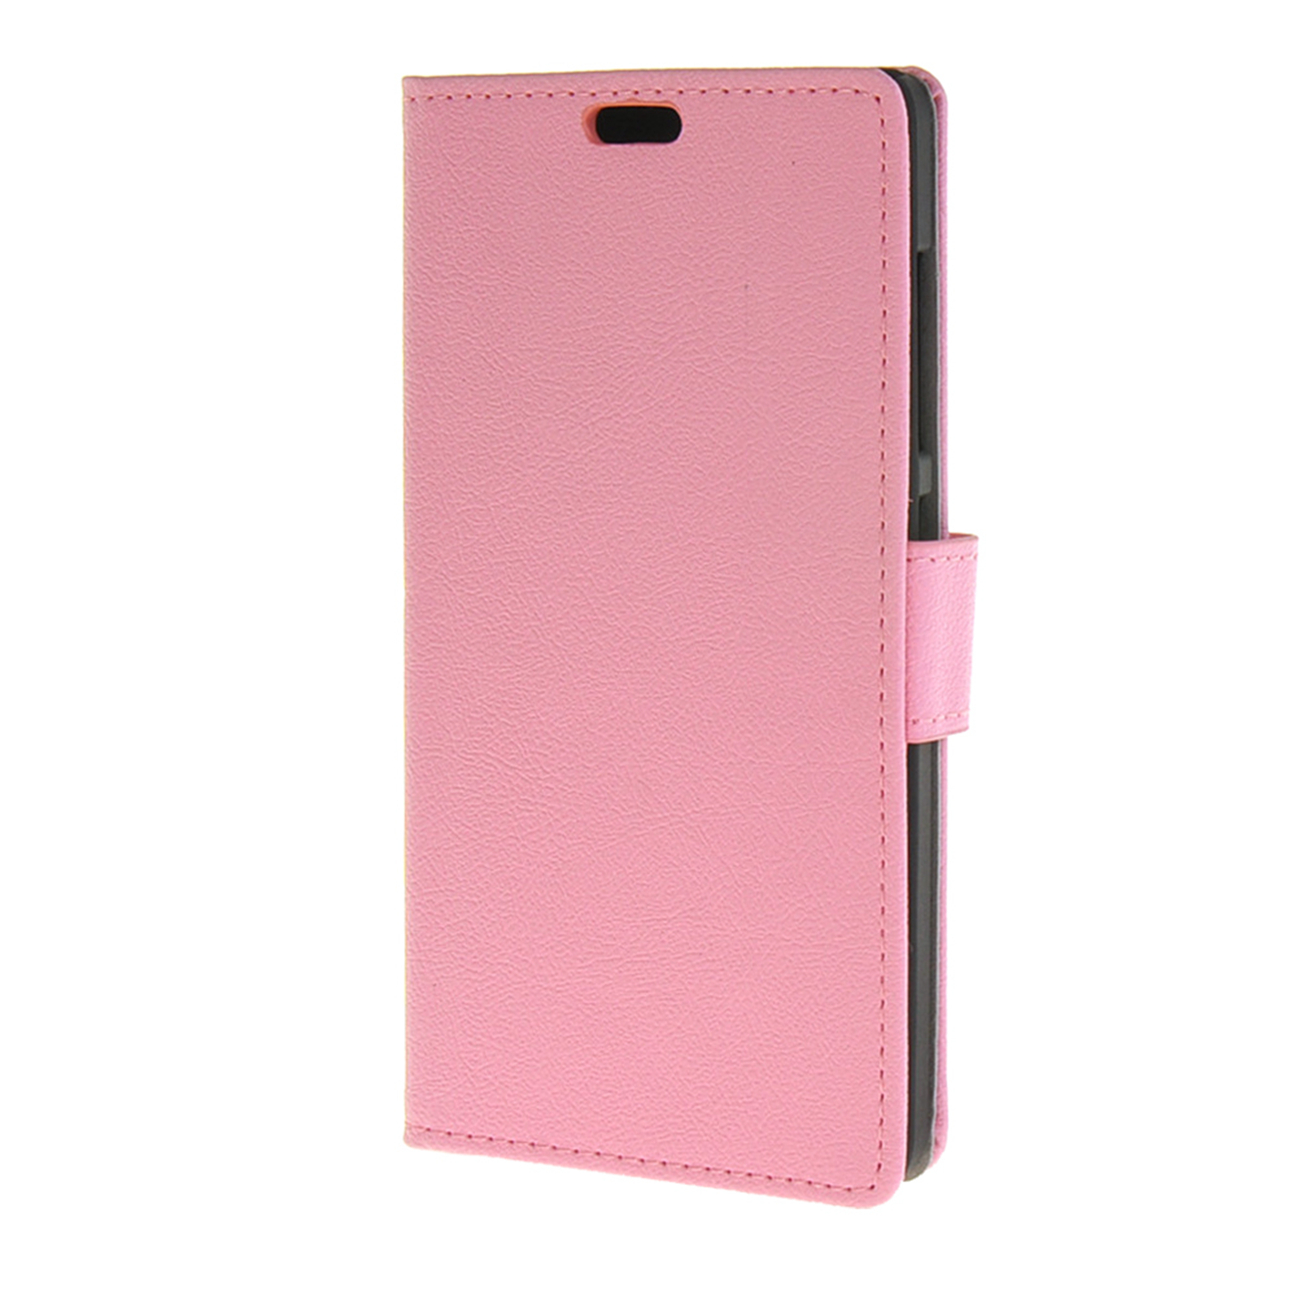 MOONCASE mooncase slim leather side flip wallet card slot pouch with kickstand shell back чехол для nokia lumia 535 white